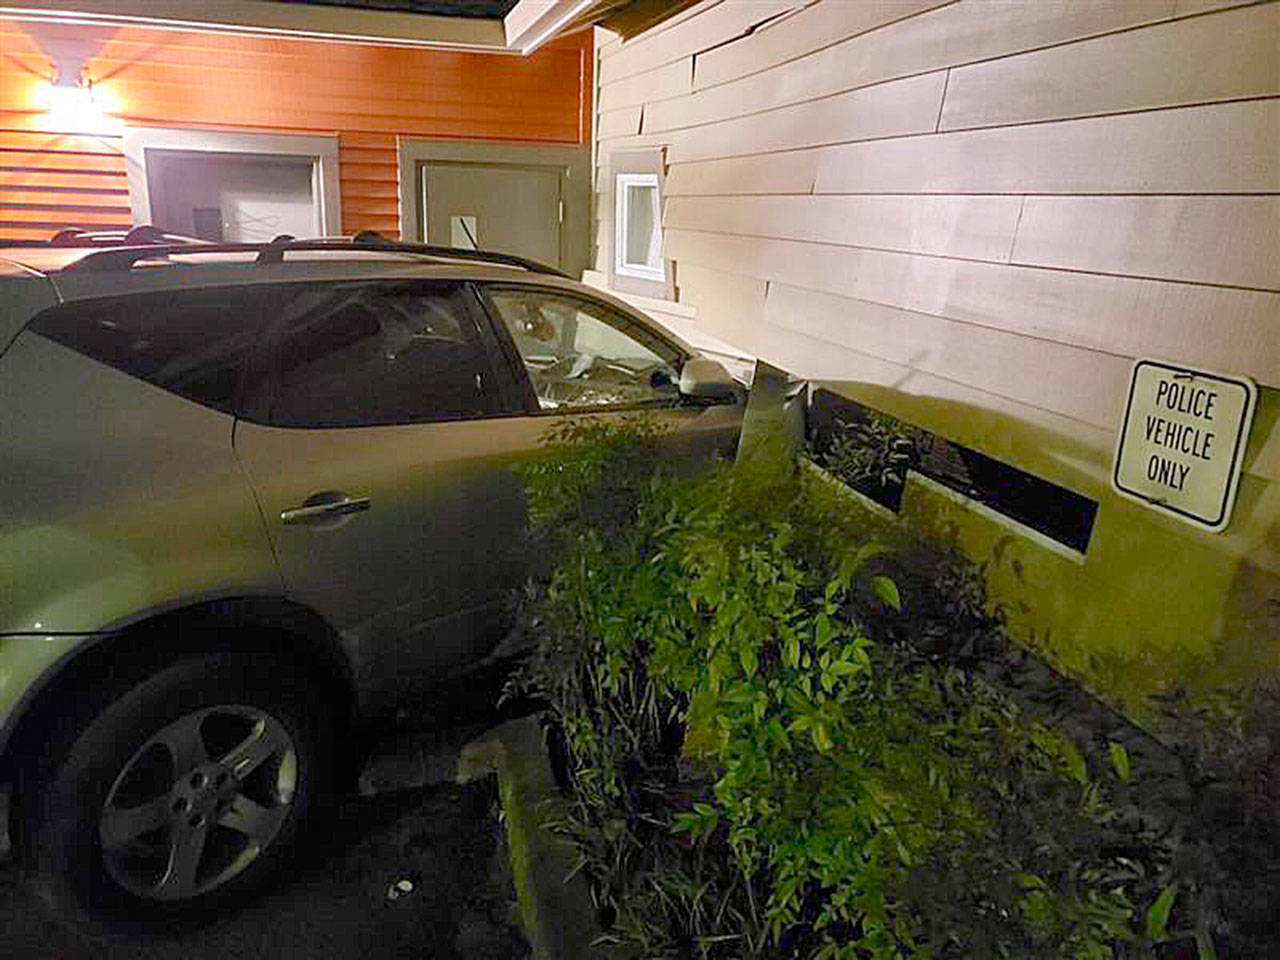 A woman in her 30s allegedly crashed her Nissan Murano into an Everett Fire Department station on Madison Street on Saturday night. (Everett Fire Department)